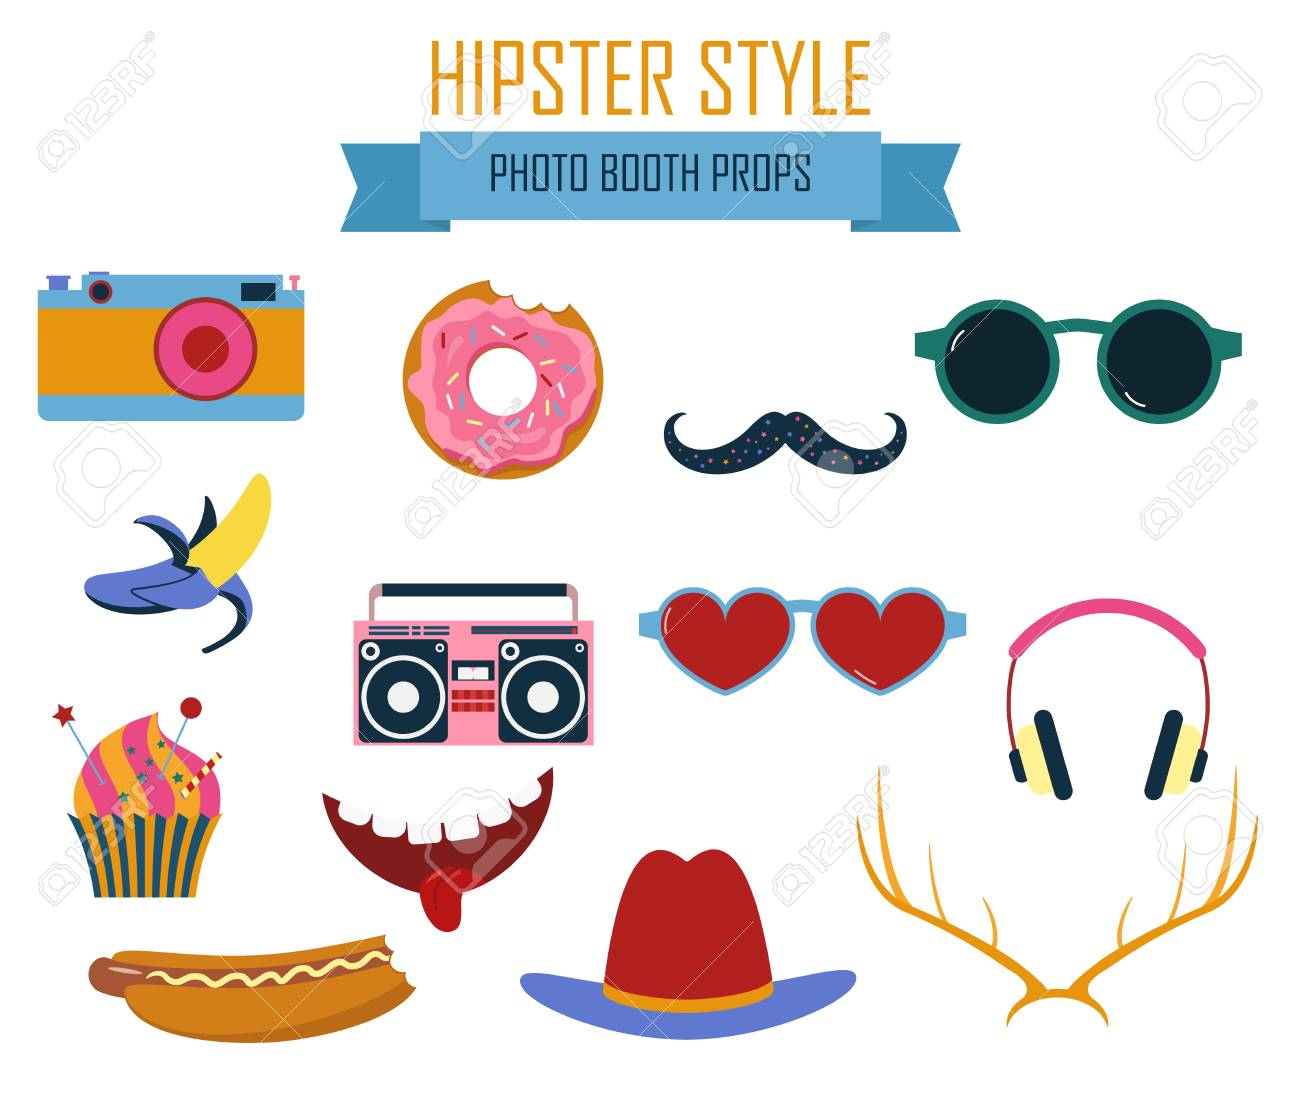 graphic about Photo Props Printable referred to as Picture booth printable props variety within just hipster design vector..